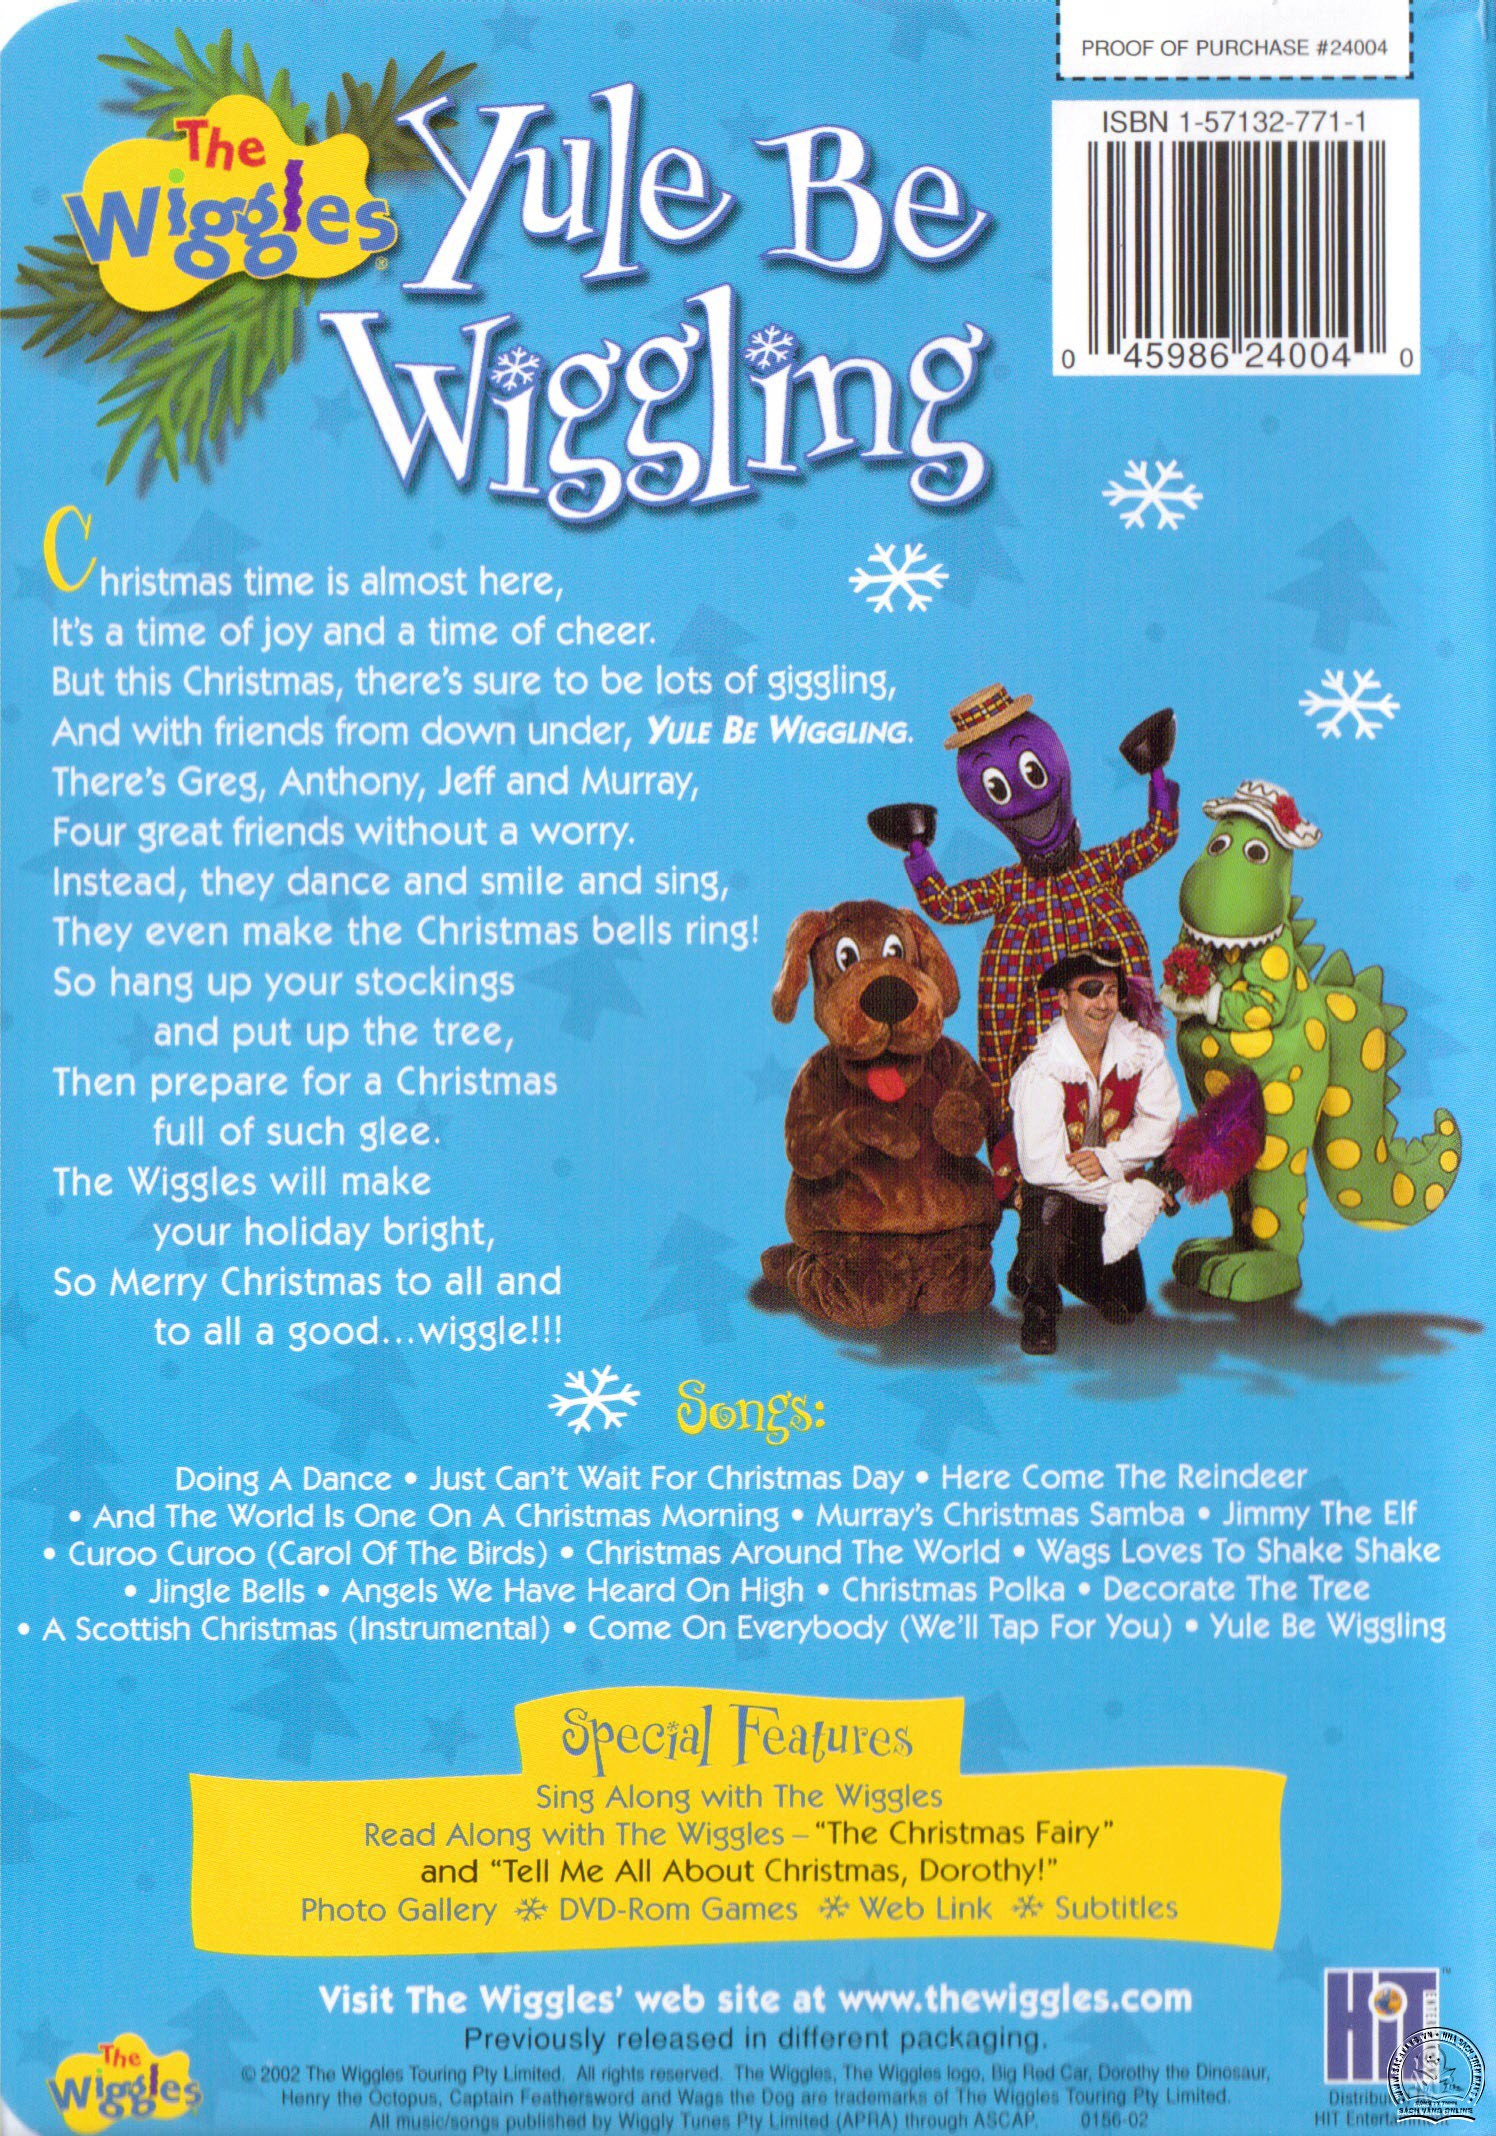 The Wiggles - Yule Be Wiggling back